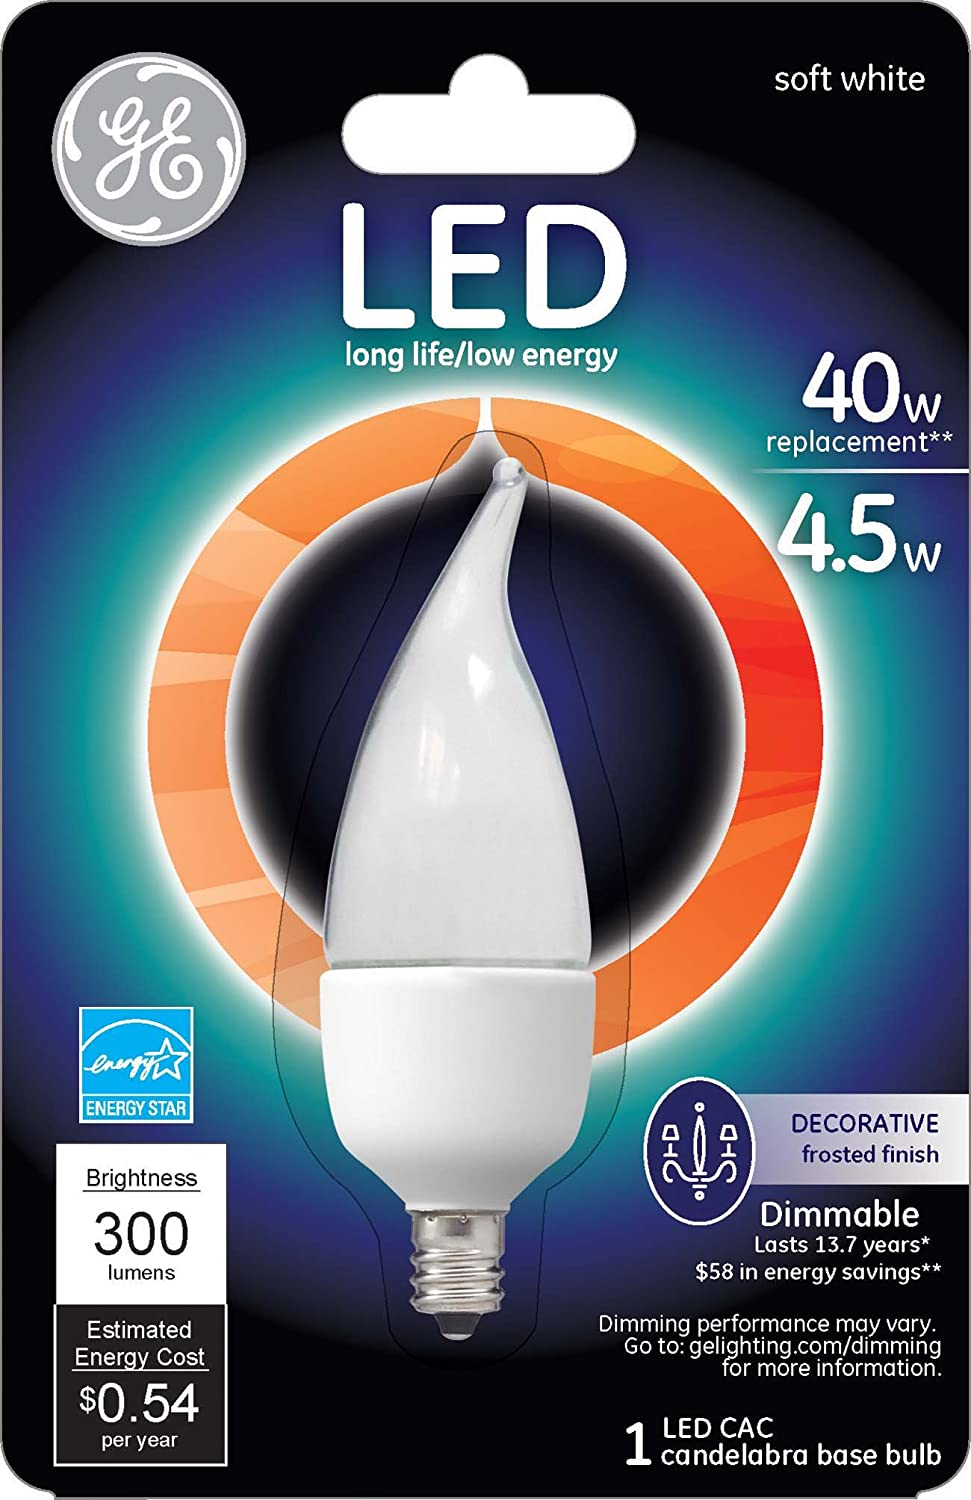 Amazon ge lighting 89948 energy smart led 45 watt 300 lumen amazon ge lighting 89948 energy smart led 45 watt 300 lumen bent tip bulb with candelabra base frosted 1 pack home improvement arubaitofo Image collections